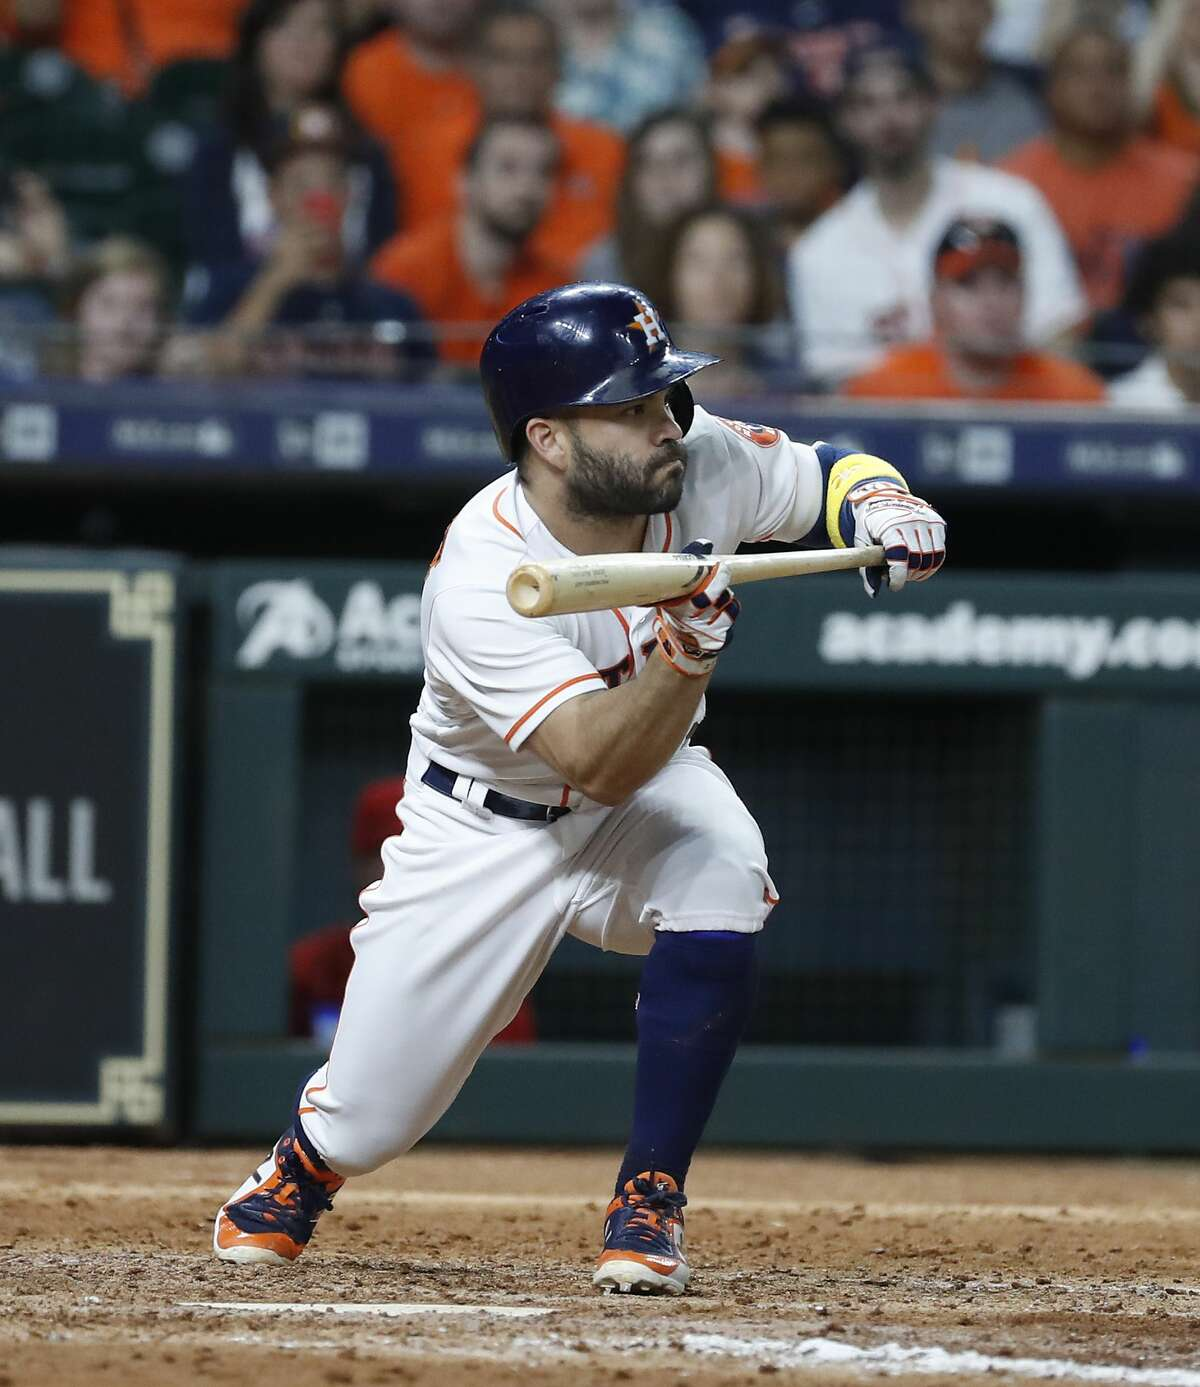 Houston Astros Jose Altuve (27) squares up to bunt during the eighth inning of an MLB baseball game at Minute Maid Park, Saturday, September 1, 2018, in Houston.